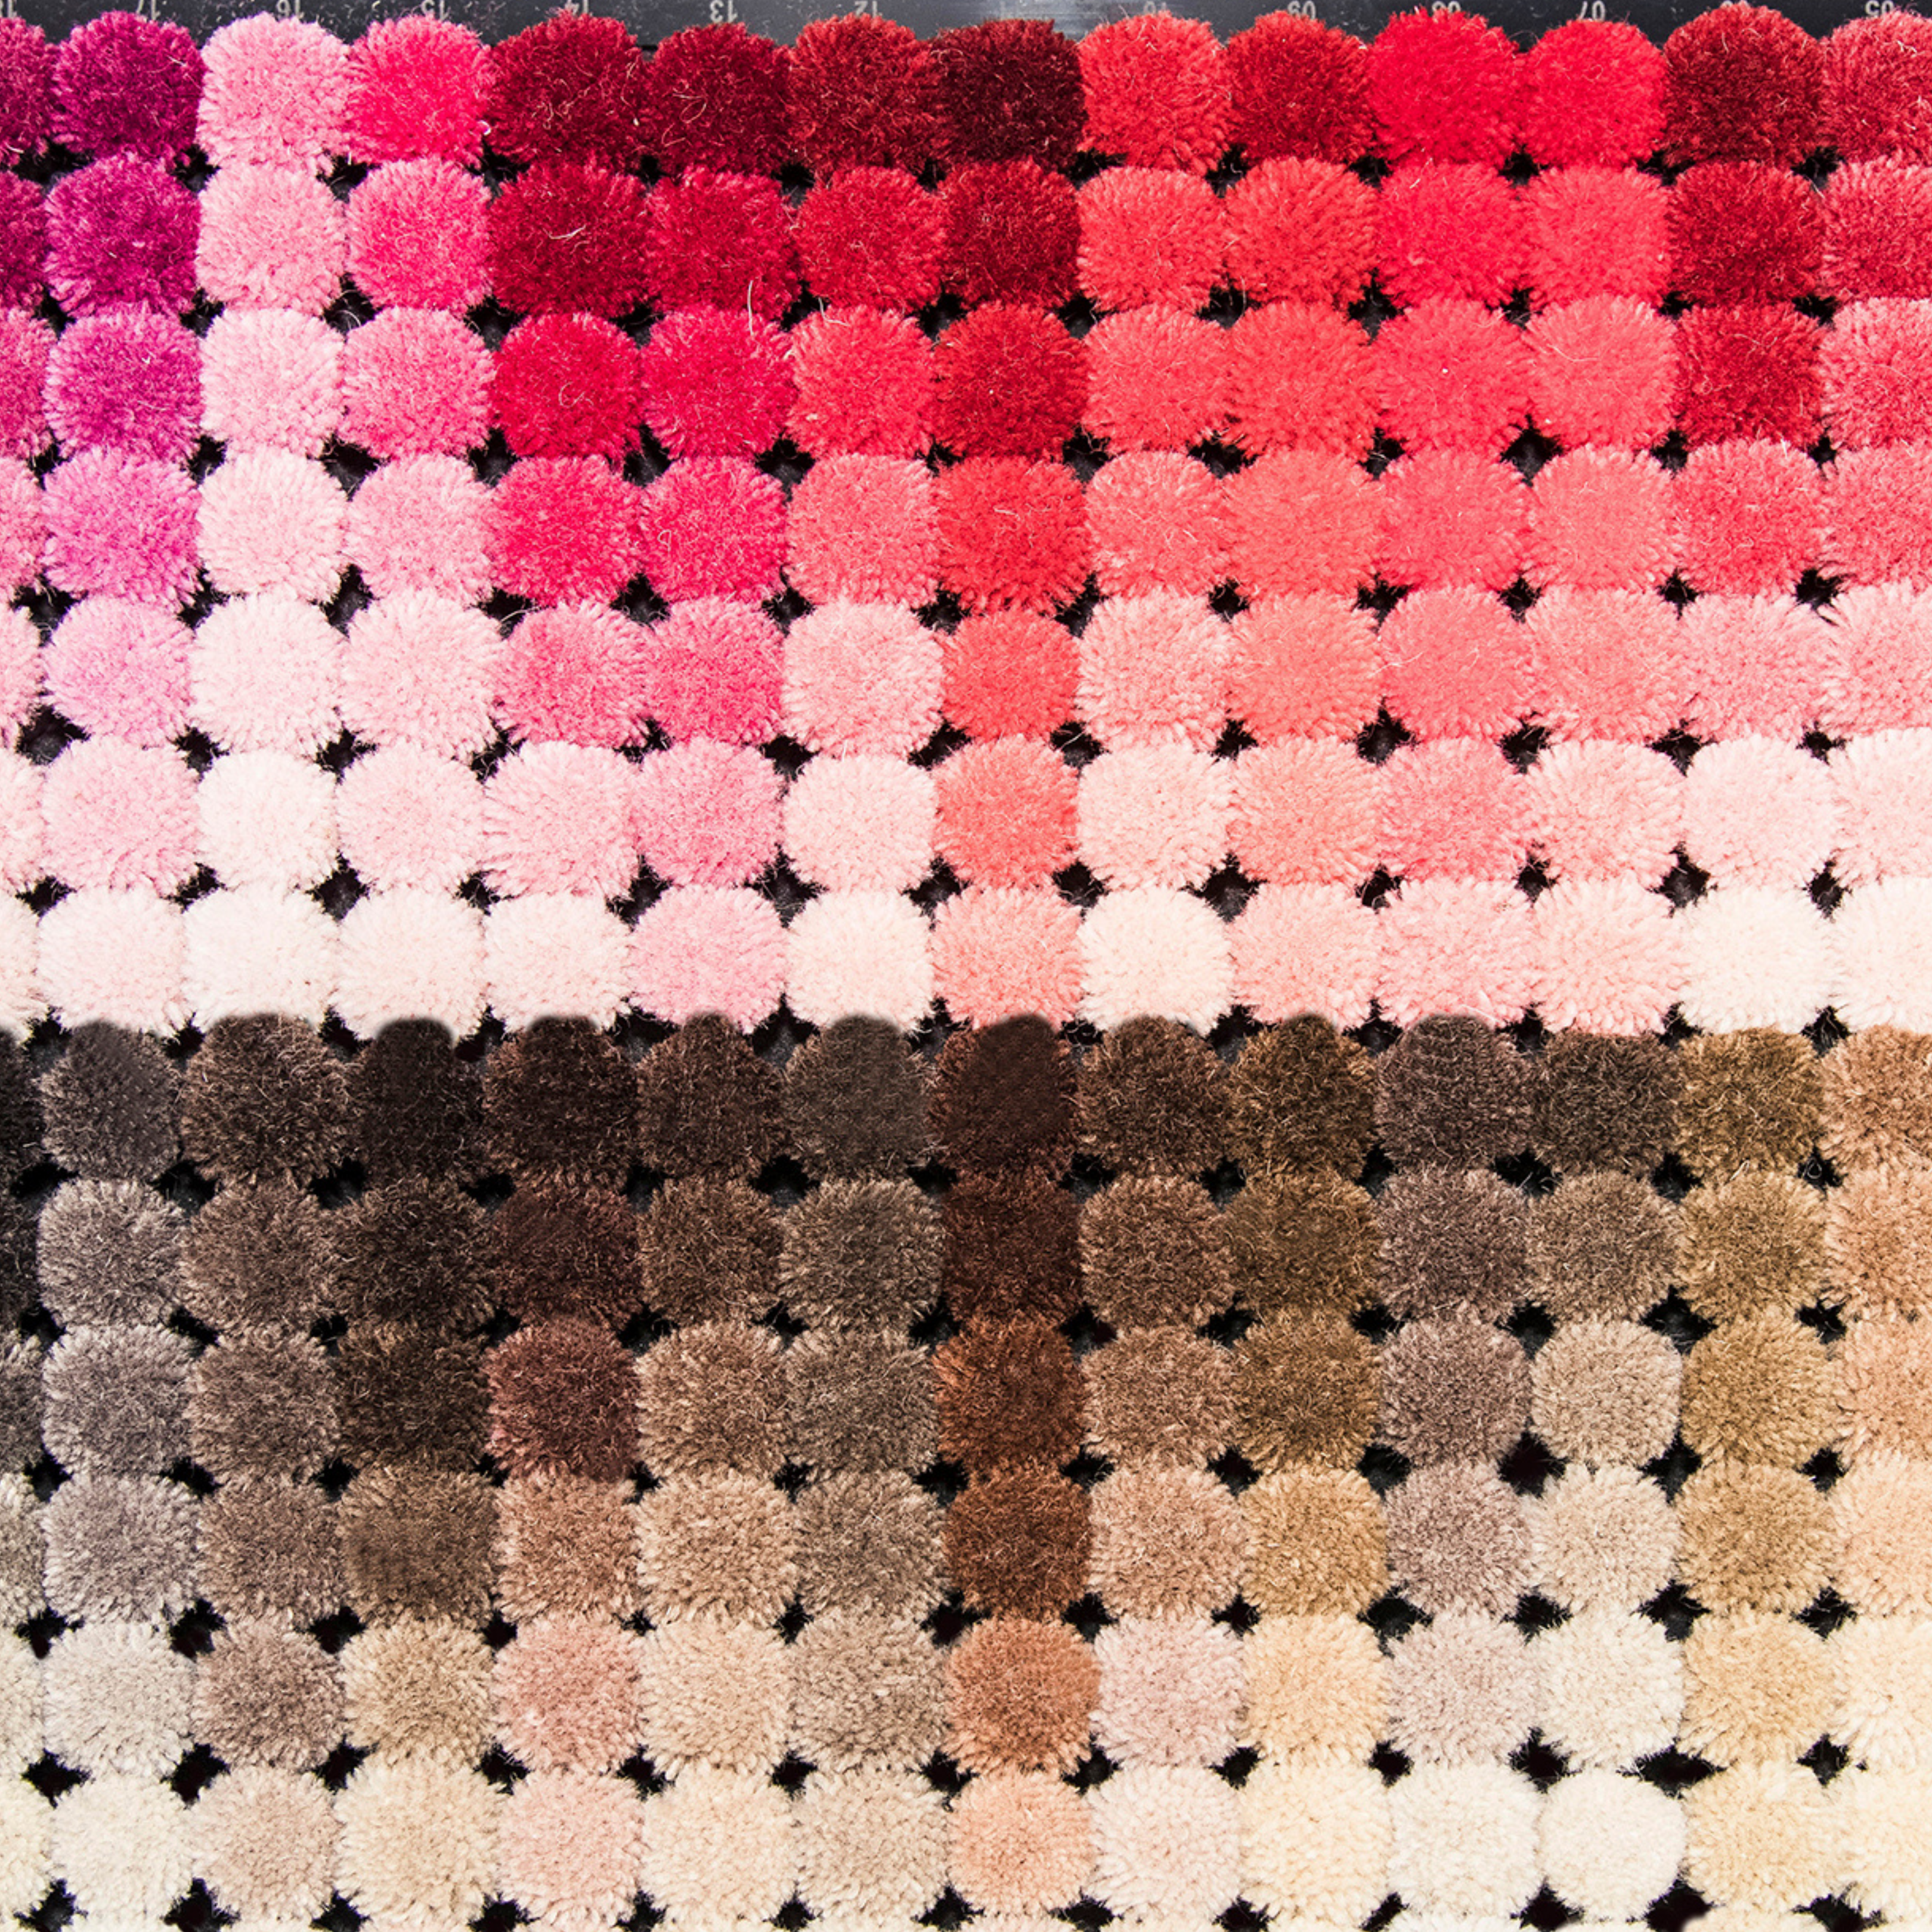 Luxury Carpet Studio Collections are aimed to inspire and show the wide range of possibilities in colours, yarns, shapes and design our designers offer. Our Pom Pom Box shows an example of all the colours and shades we can use to create a tailor made luxury carpet.